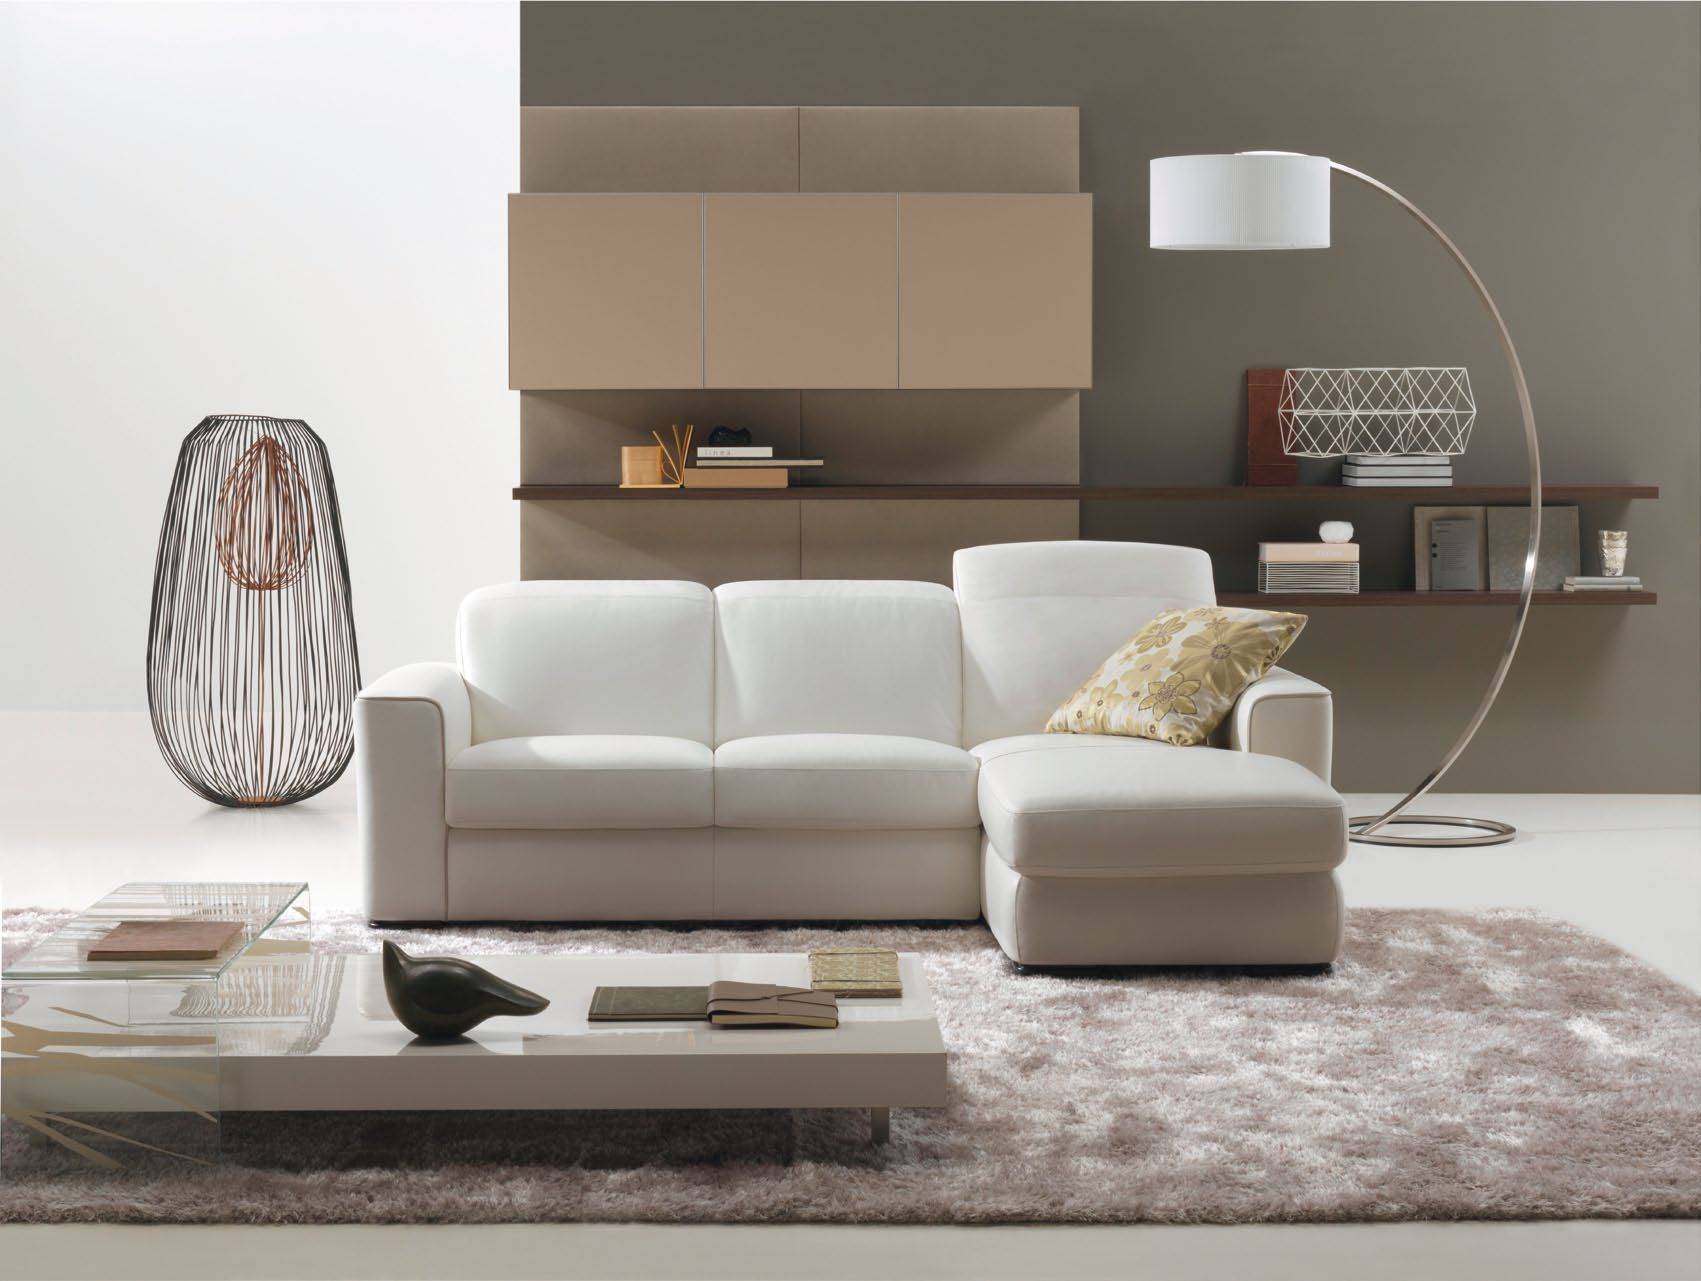 Merveilleux Top 5 Tips On How To Choose The Perfect Sofa For Your Home · Living Room ...